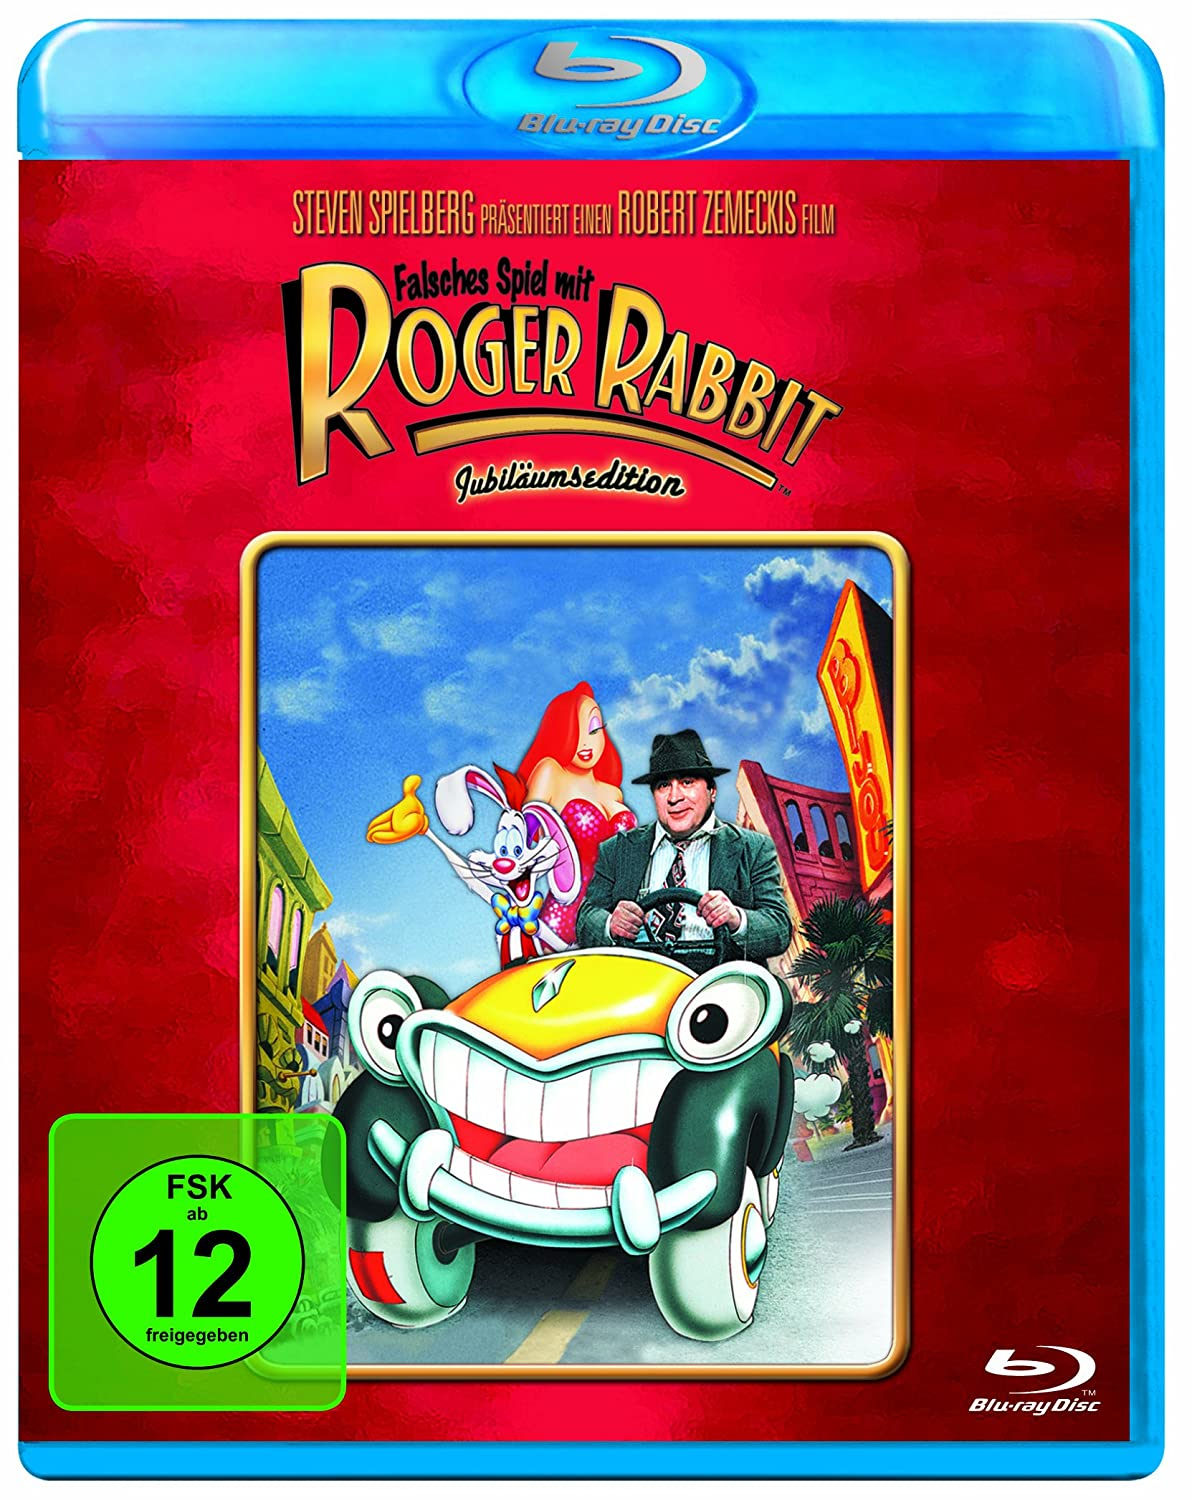 Falsches Spiel mit Roger Rabbit (Blu-ray): Amazon.co.uk: Bob Hoskins ...